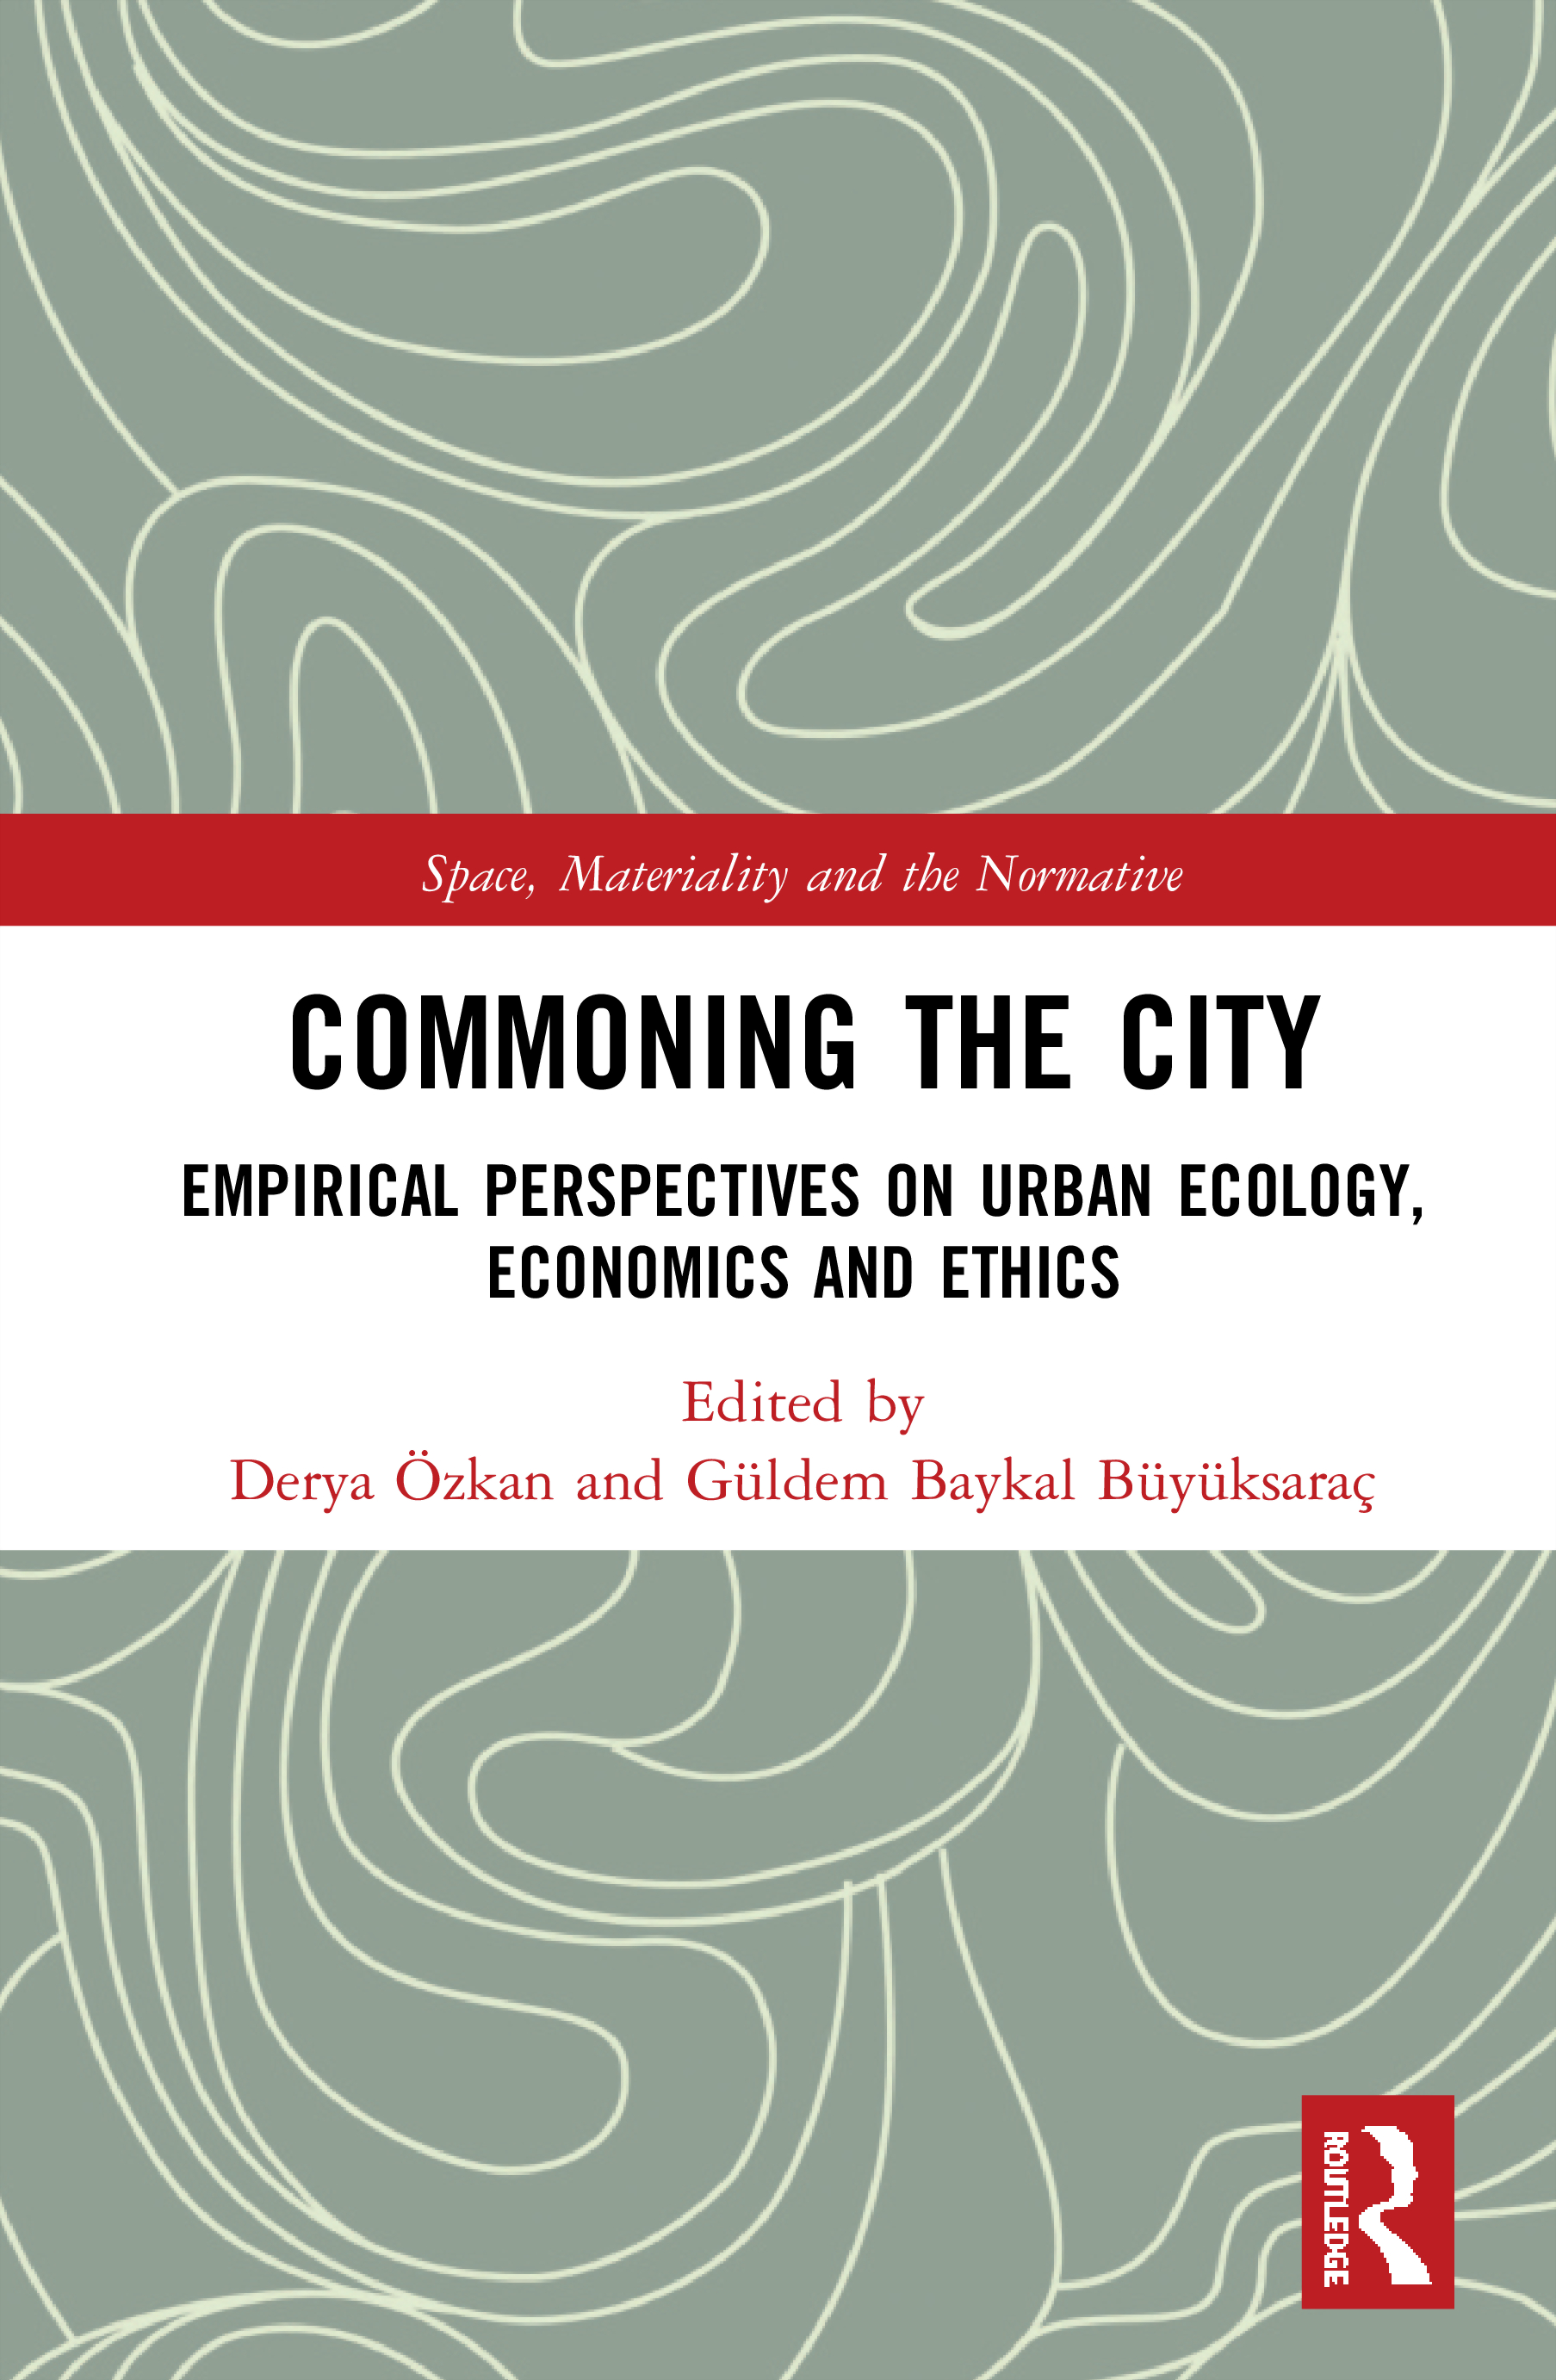 Commoning the City: Empirical Perspectives on Urban Ecology, Economics and Ethics, 1st Edition (Hardback) book cover